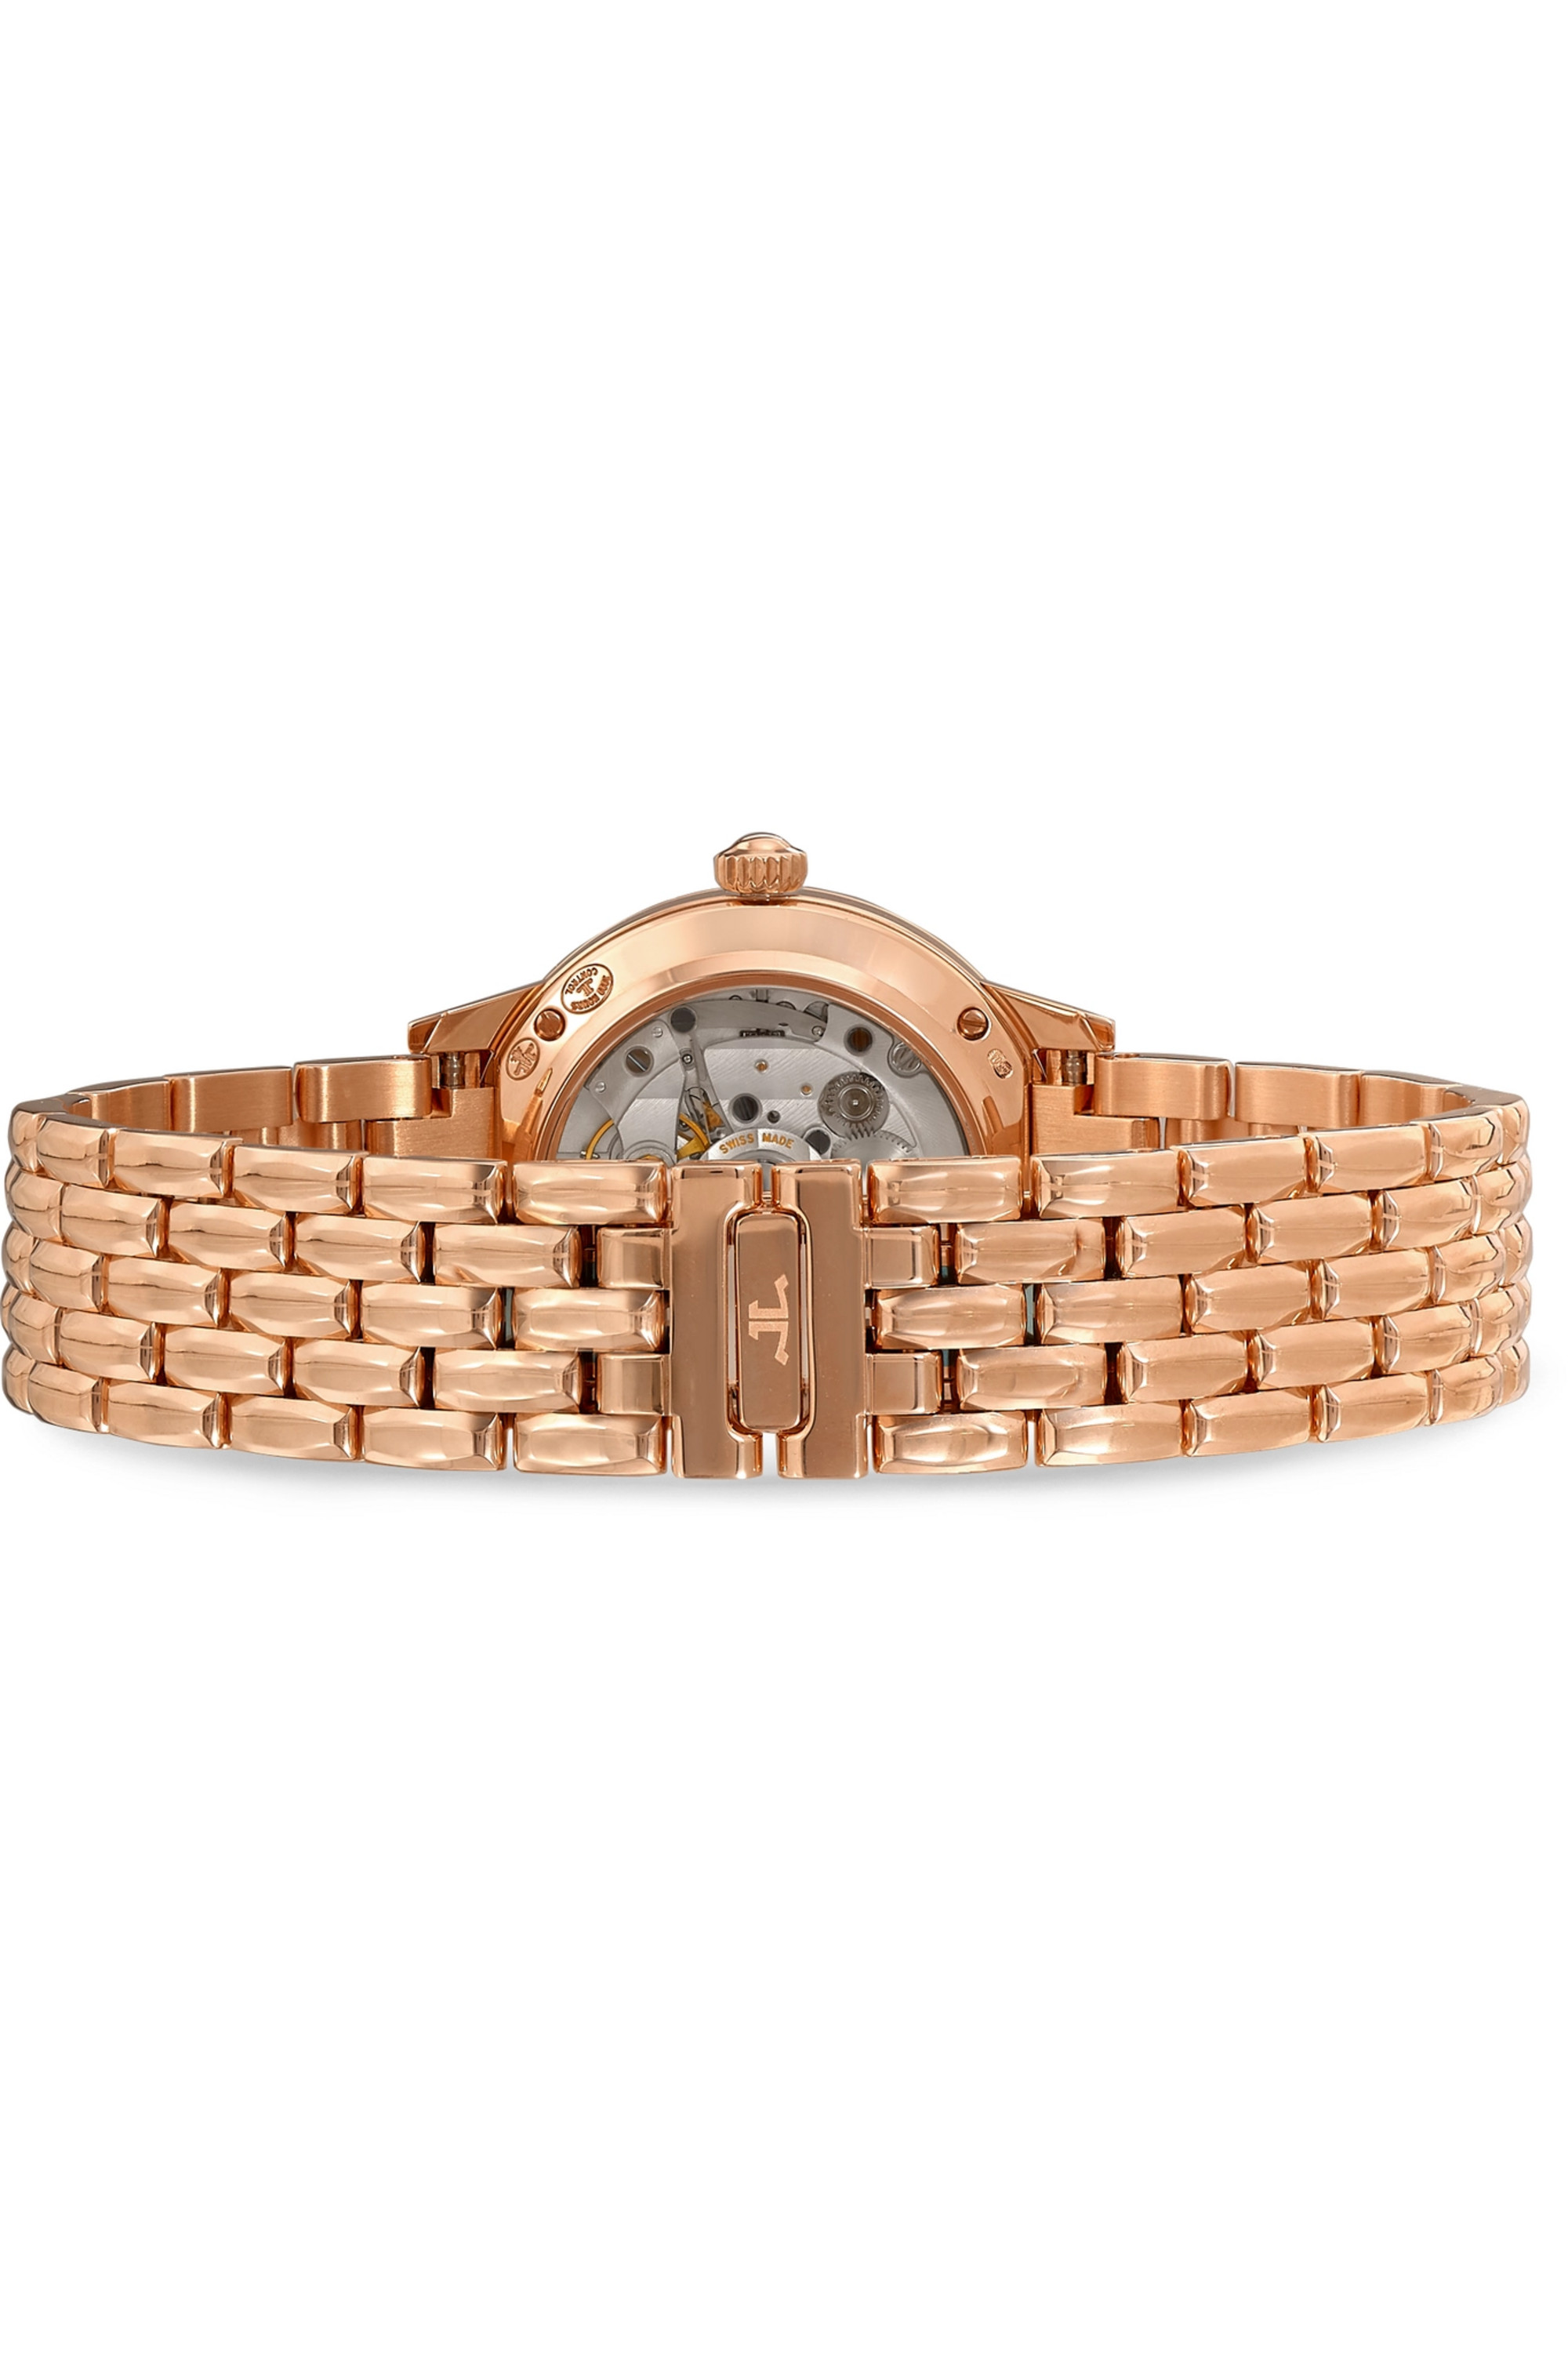 Jaeger-LeCoultre Rendez-Vous Night & Day 29mm small rose gold and diamond watch